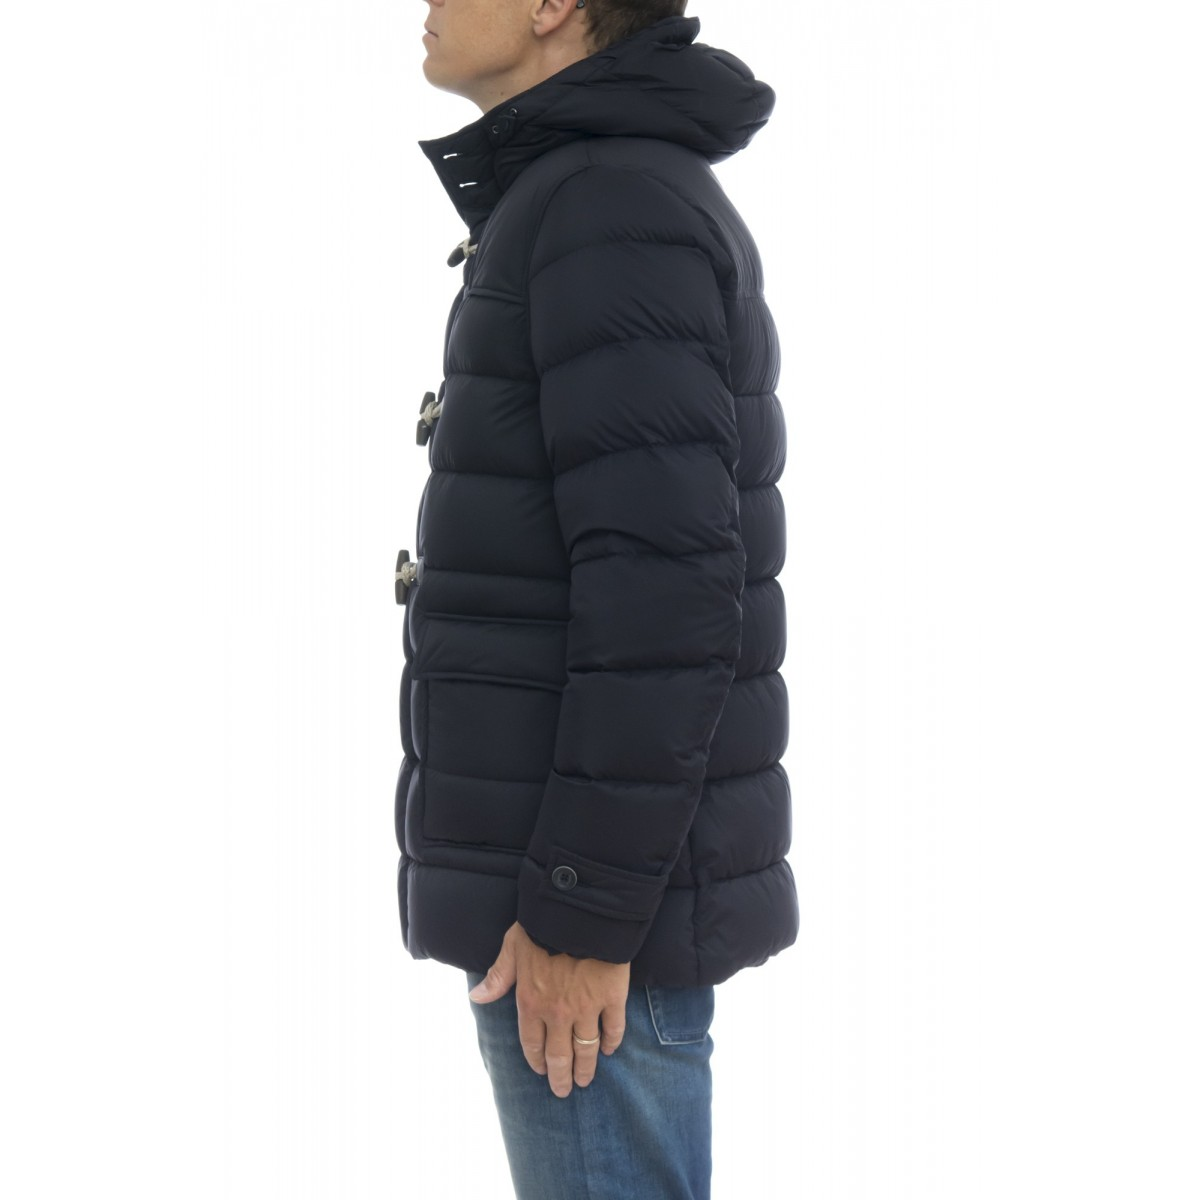 Down Jacket Man- I009ule 19288 montgomery legend 3 piume